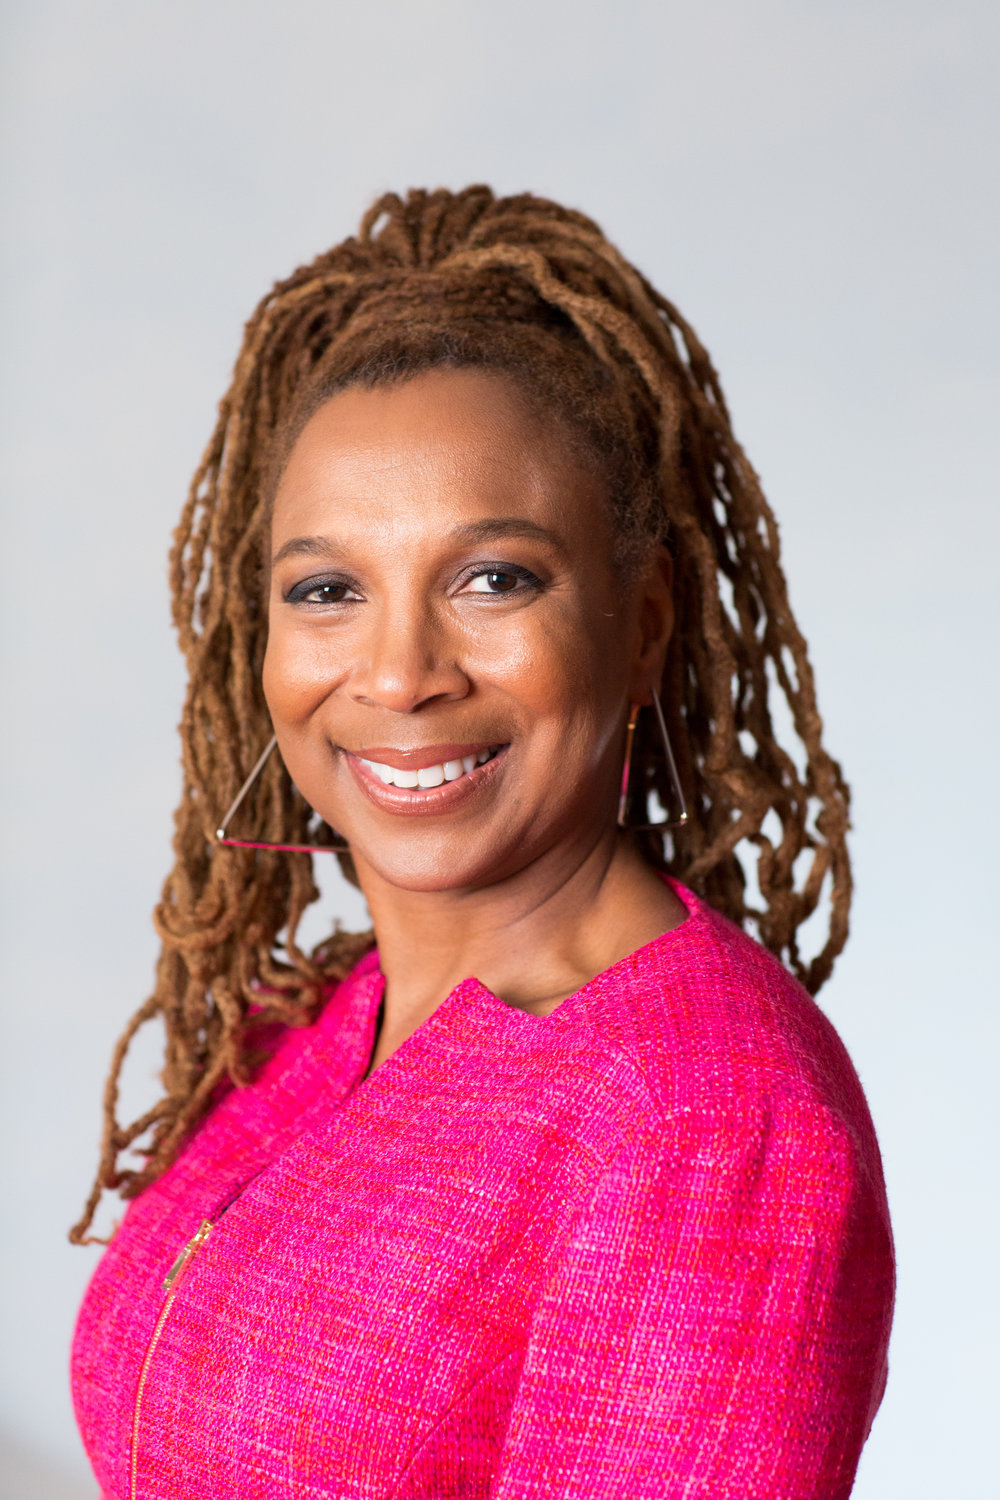 Moderated by Kimberle Crenshaw Co-Founder & Executive Director of the African American Policy Forum, Professor of Law and Columbia and UCLA